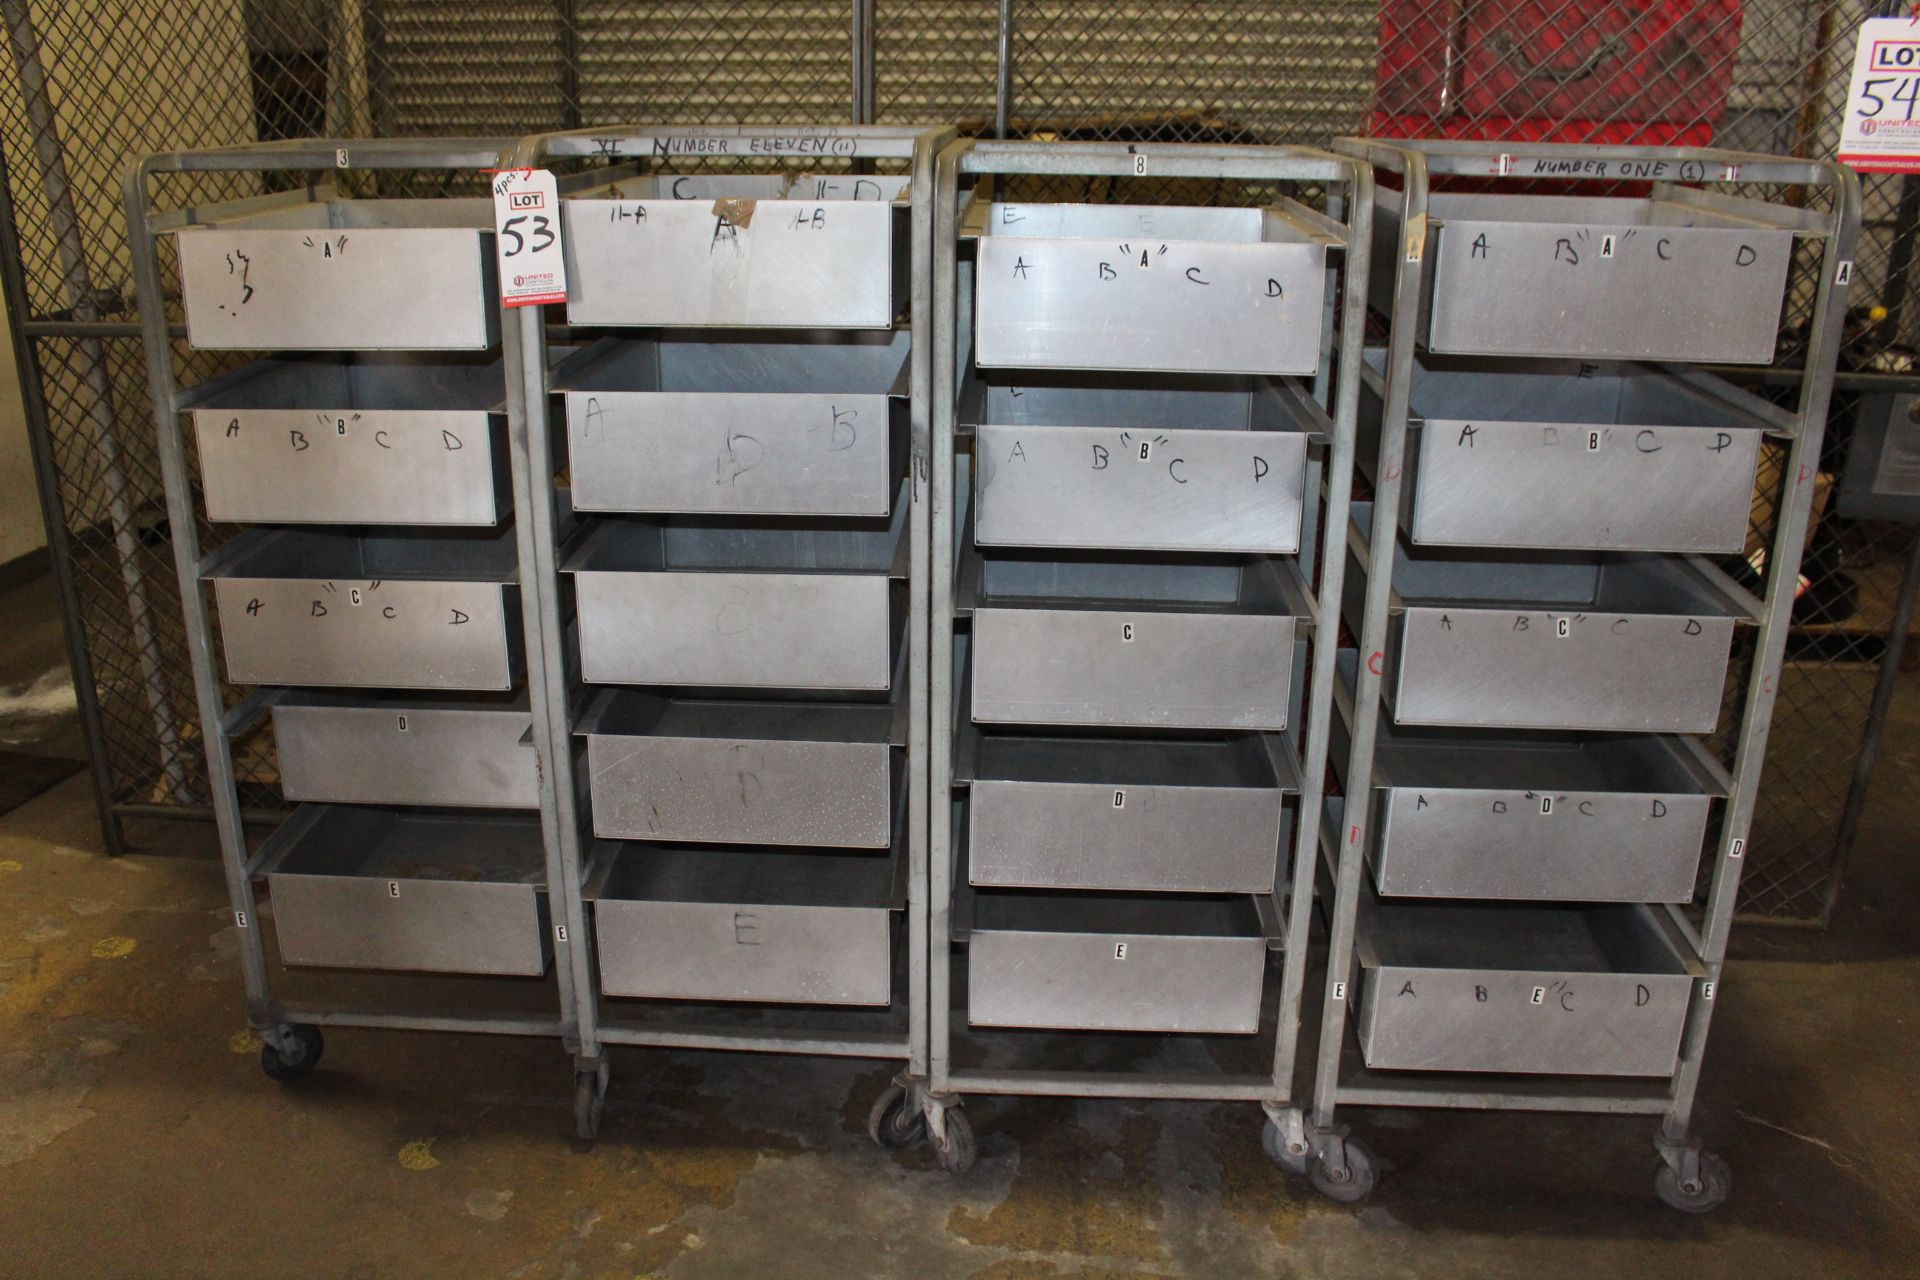 Lot 53 - LOT - (4) 5-DRAWER MOBILE PARTS CADDY